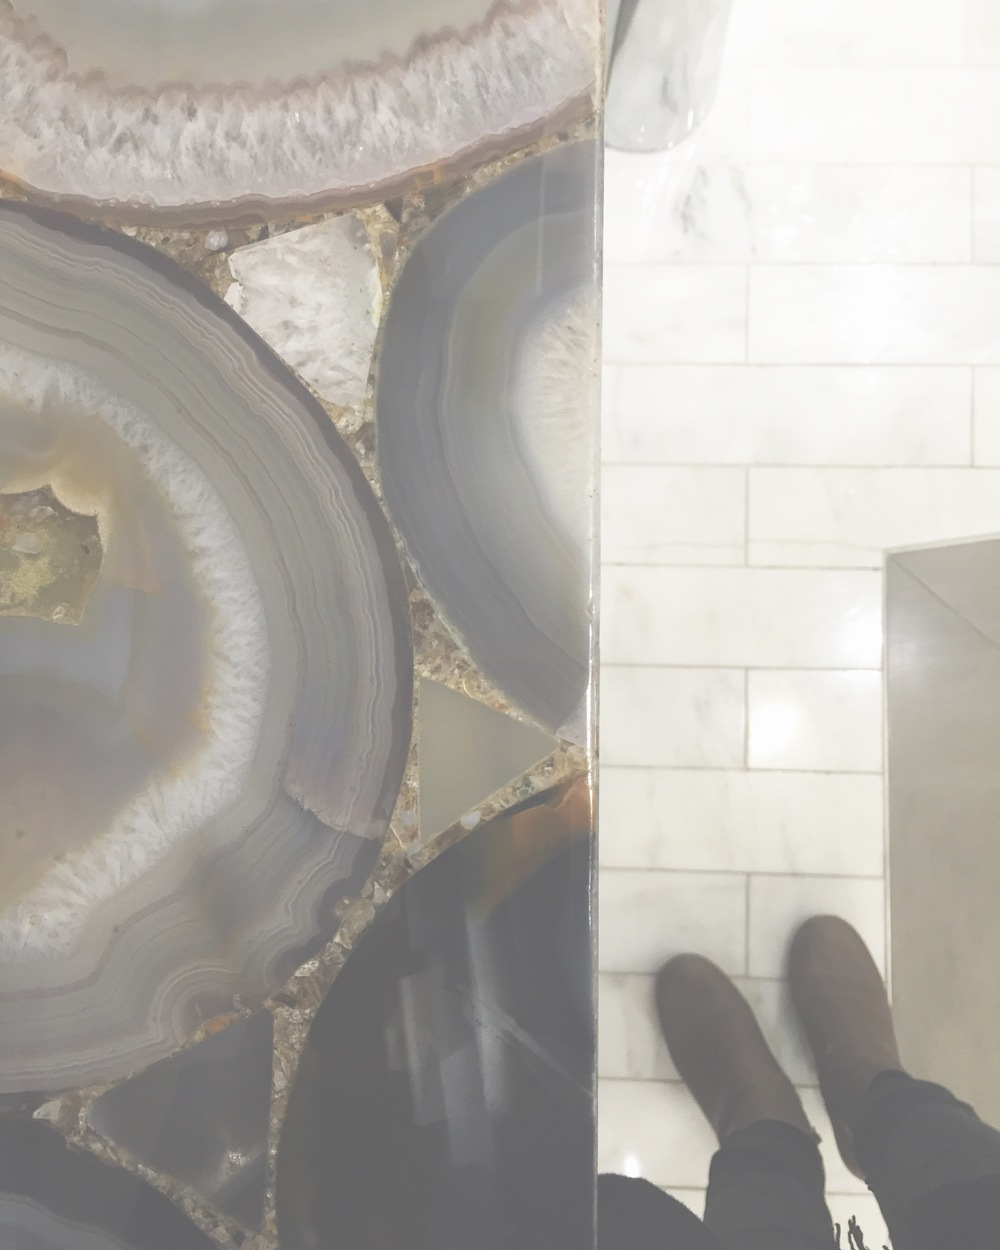 Flashy  #agate   countertop   #naturalstone   #interiors   #lovemywork